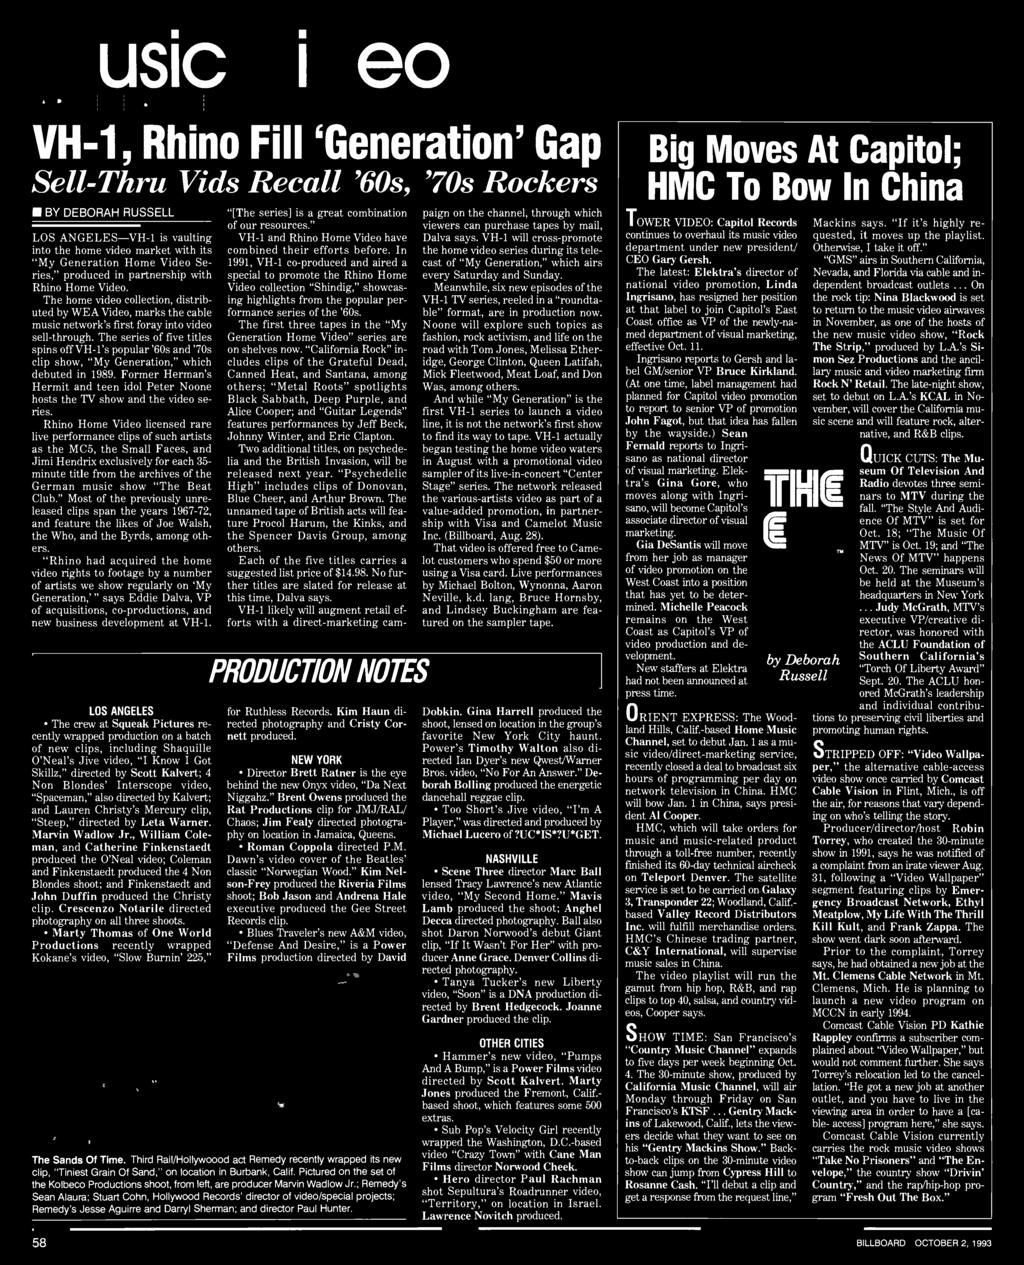 "The series of five titles spins off VH -l's popular '60s and '70s clip show, ""My Generation,"" which debuted in 989."